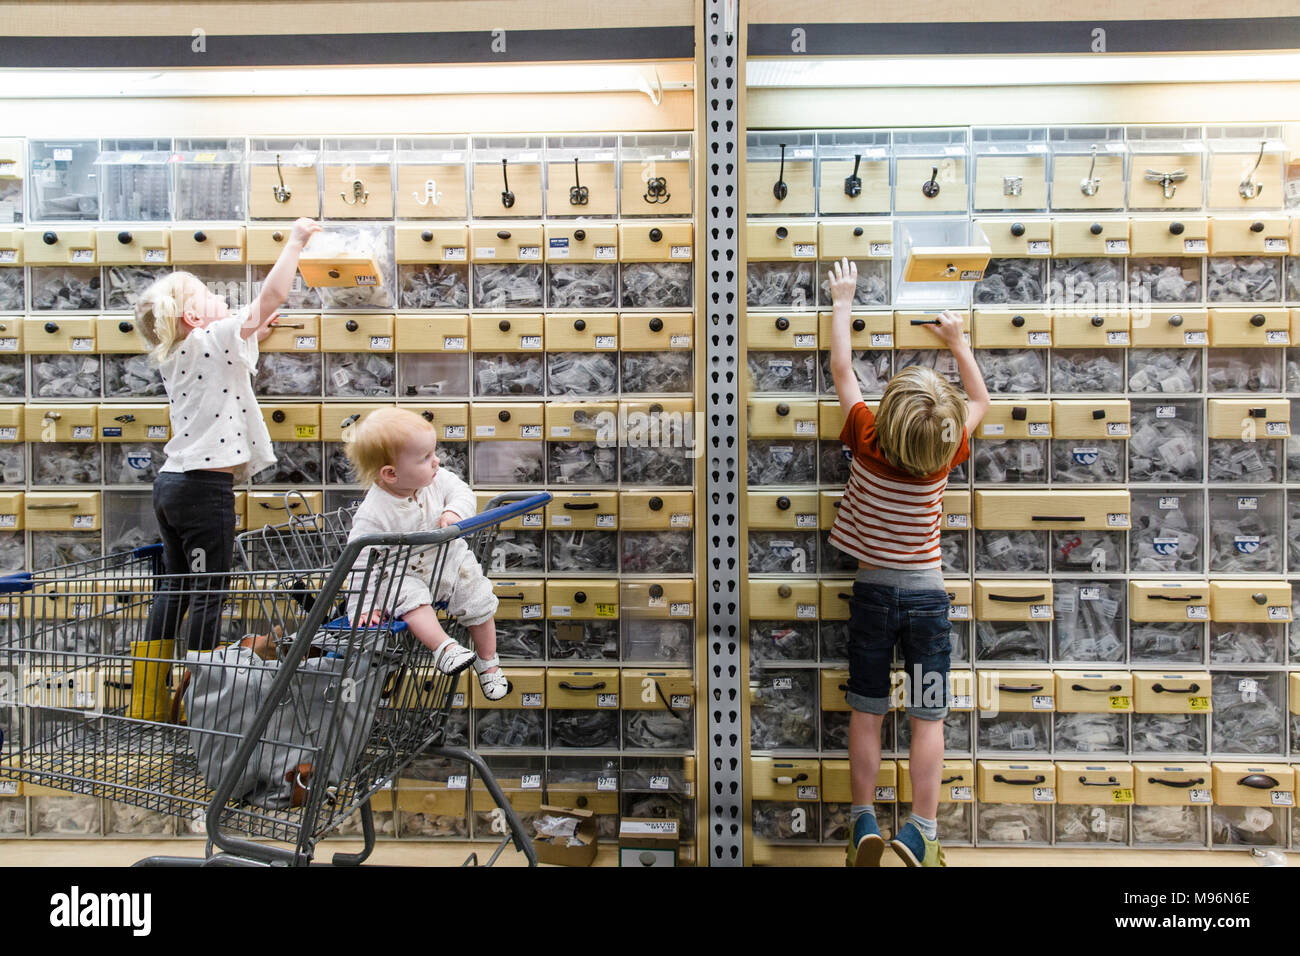 Children reaching high for boxes - Stock Image